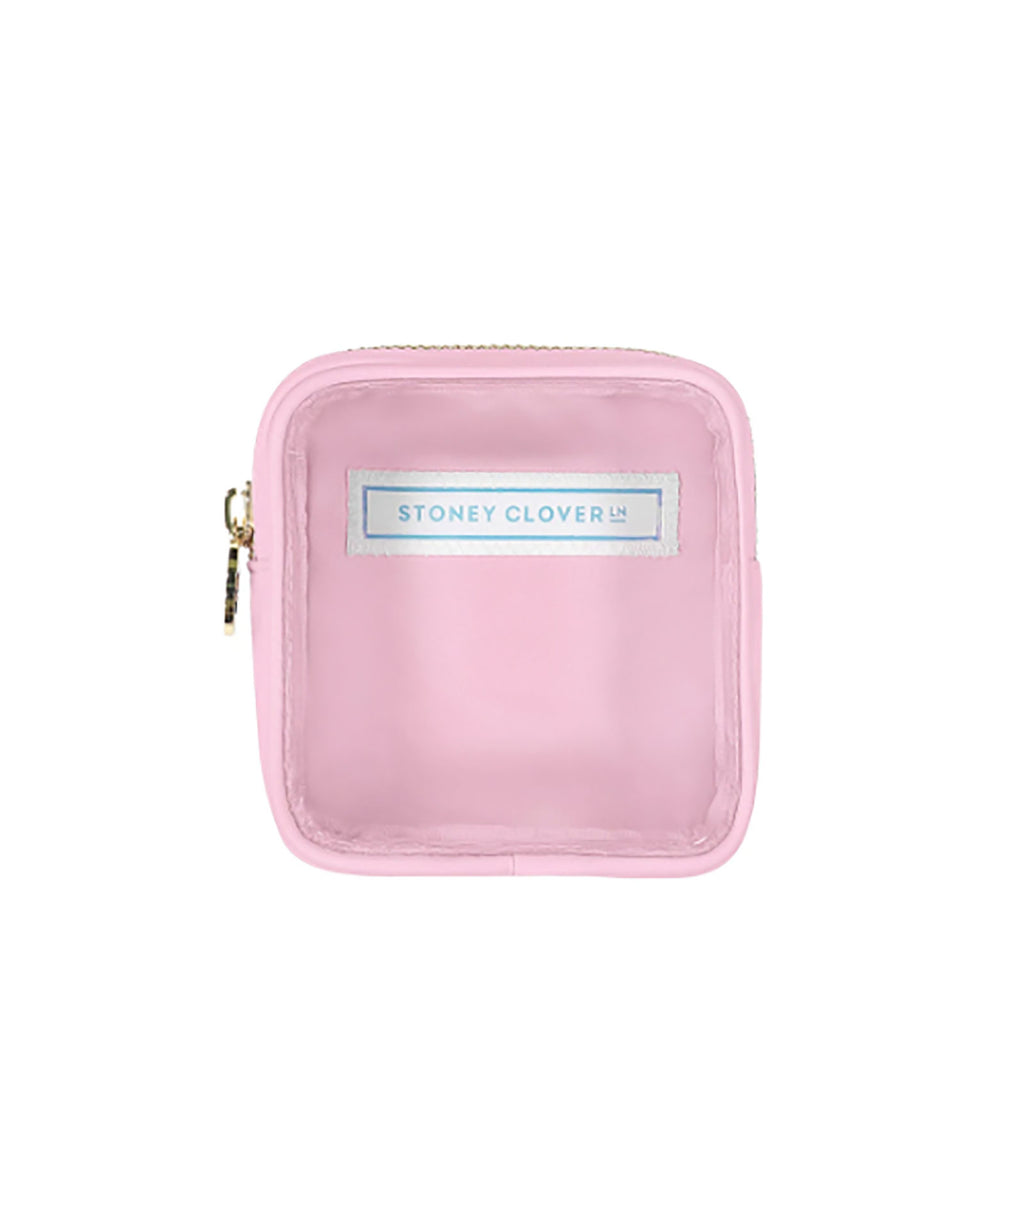 Stoney Clover Mini Flamingo Clear Pouch